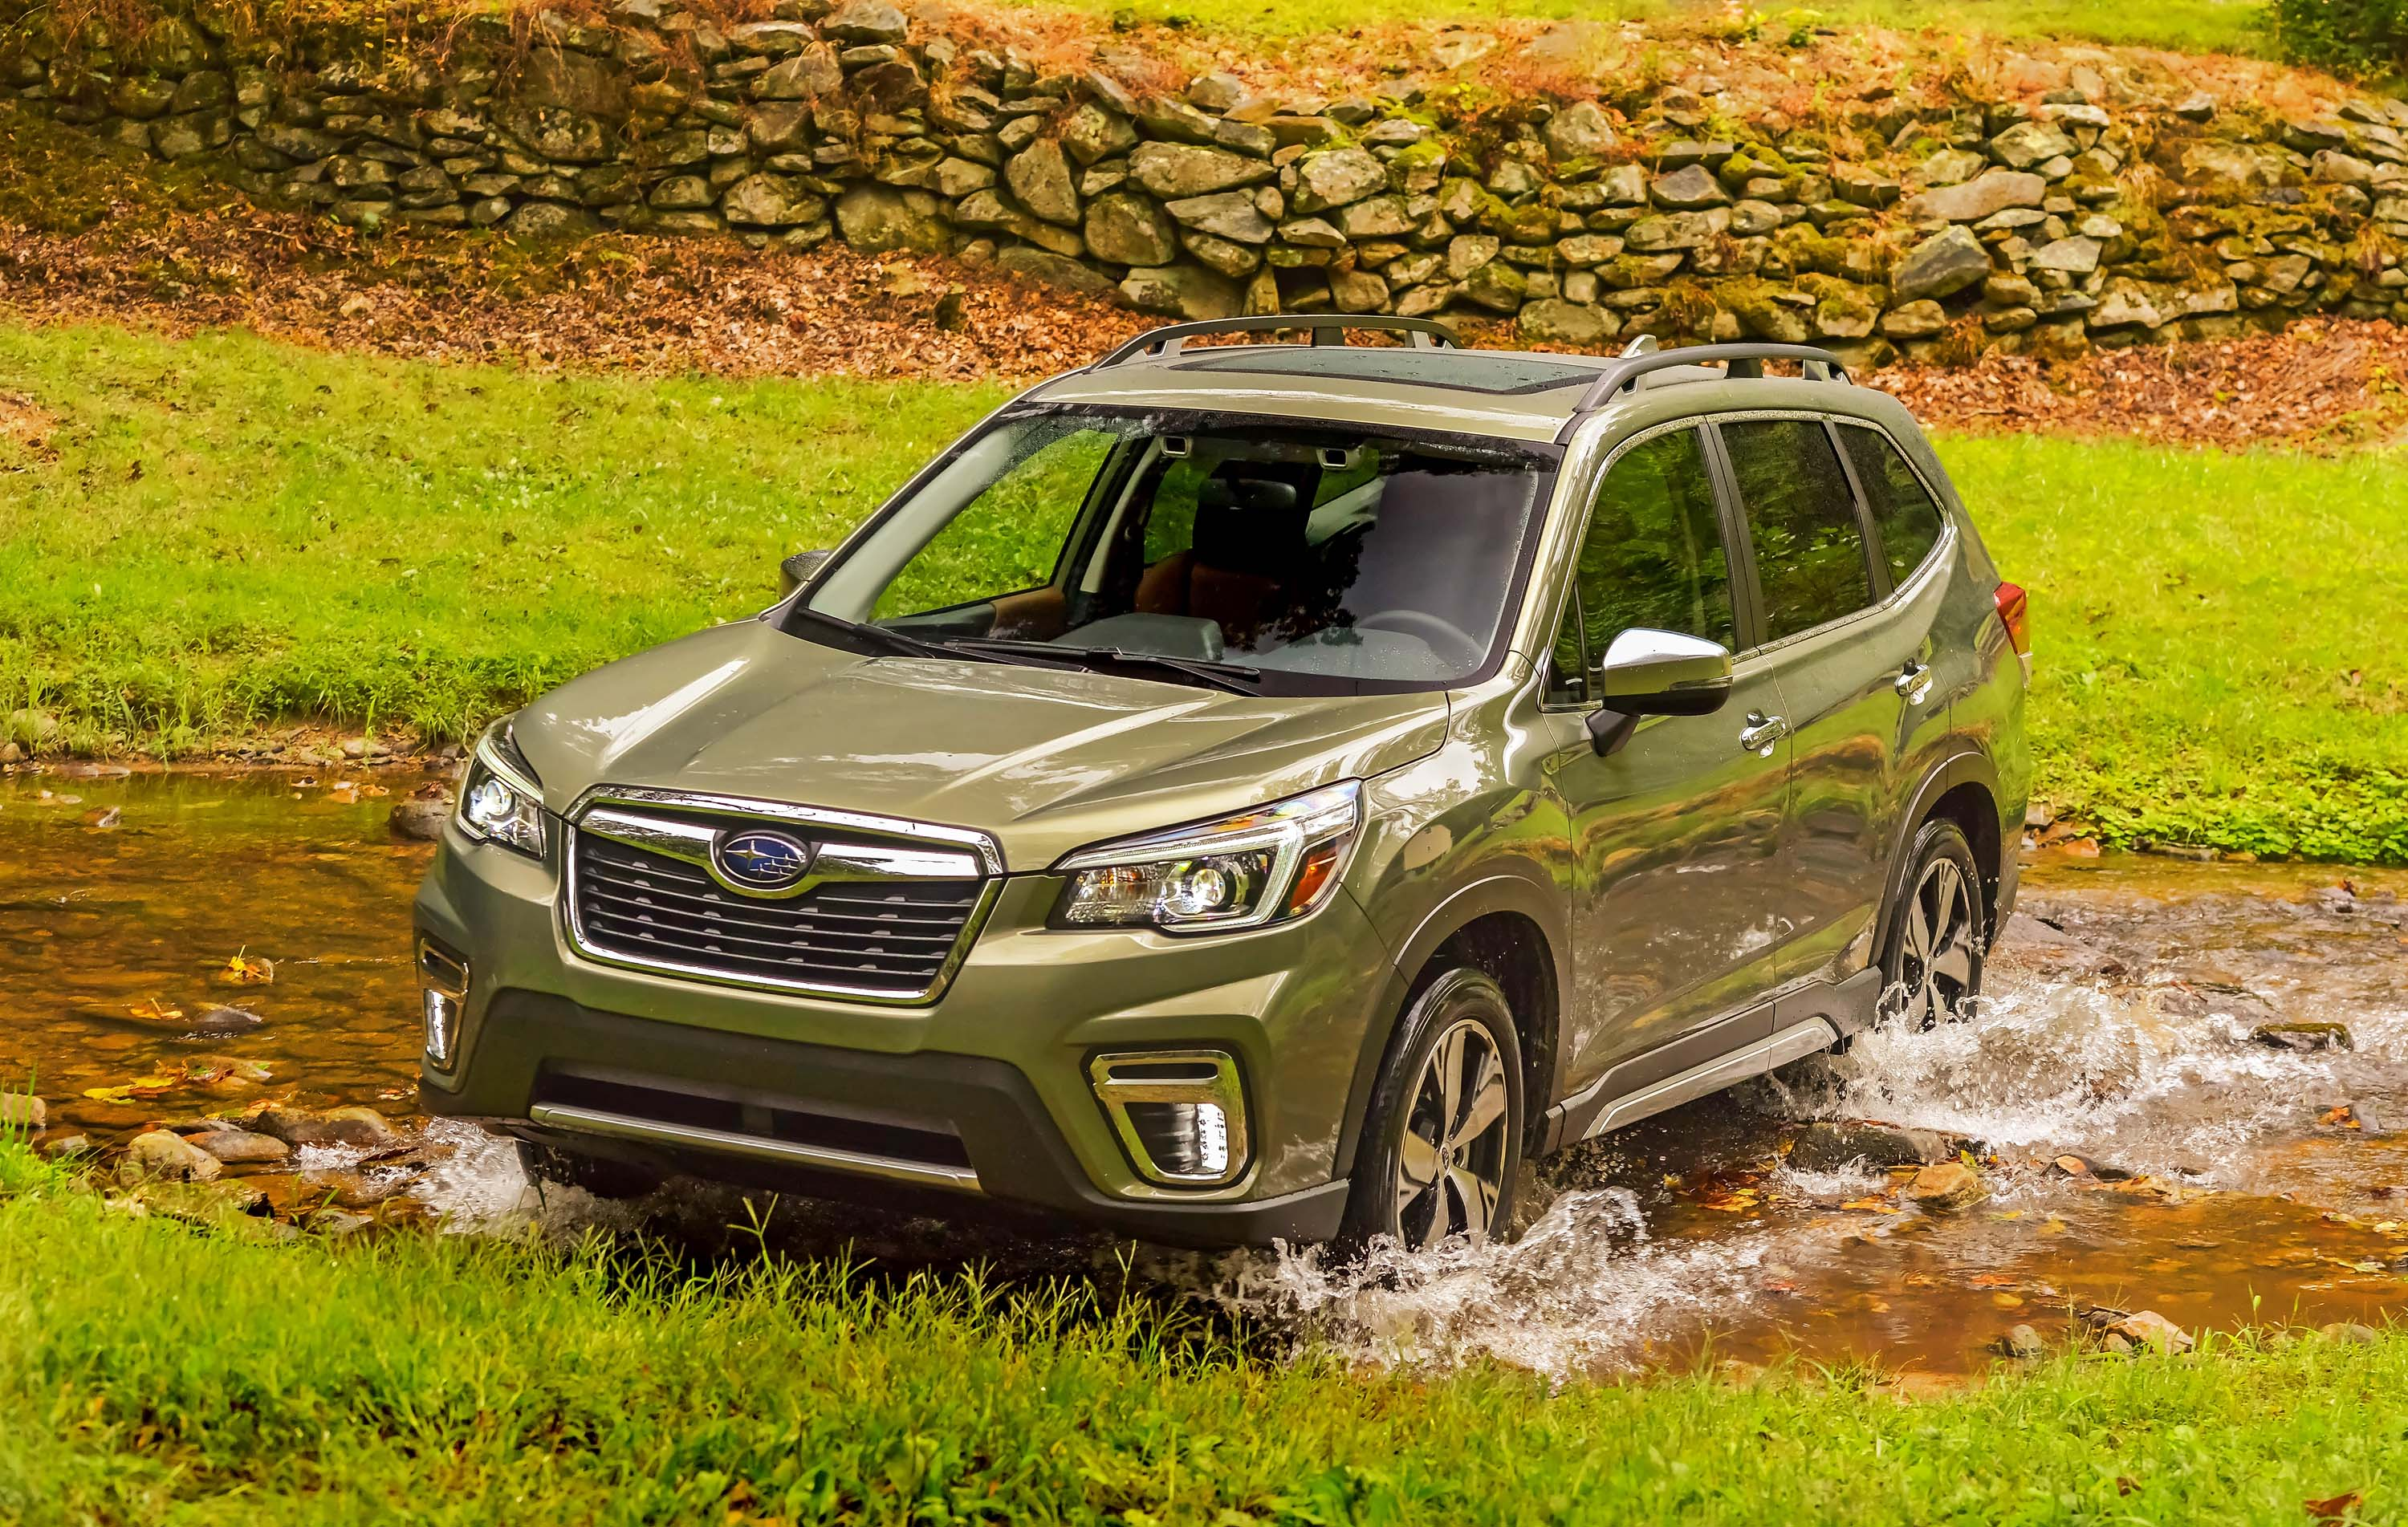 2020 Subaru Forester Xt Review.2019 Subaru Forester Vs 2020 Subaru Outback Compare Crossovers